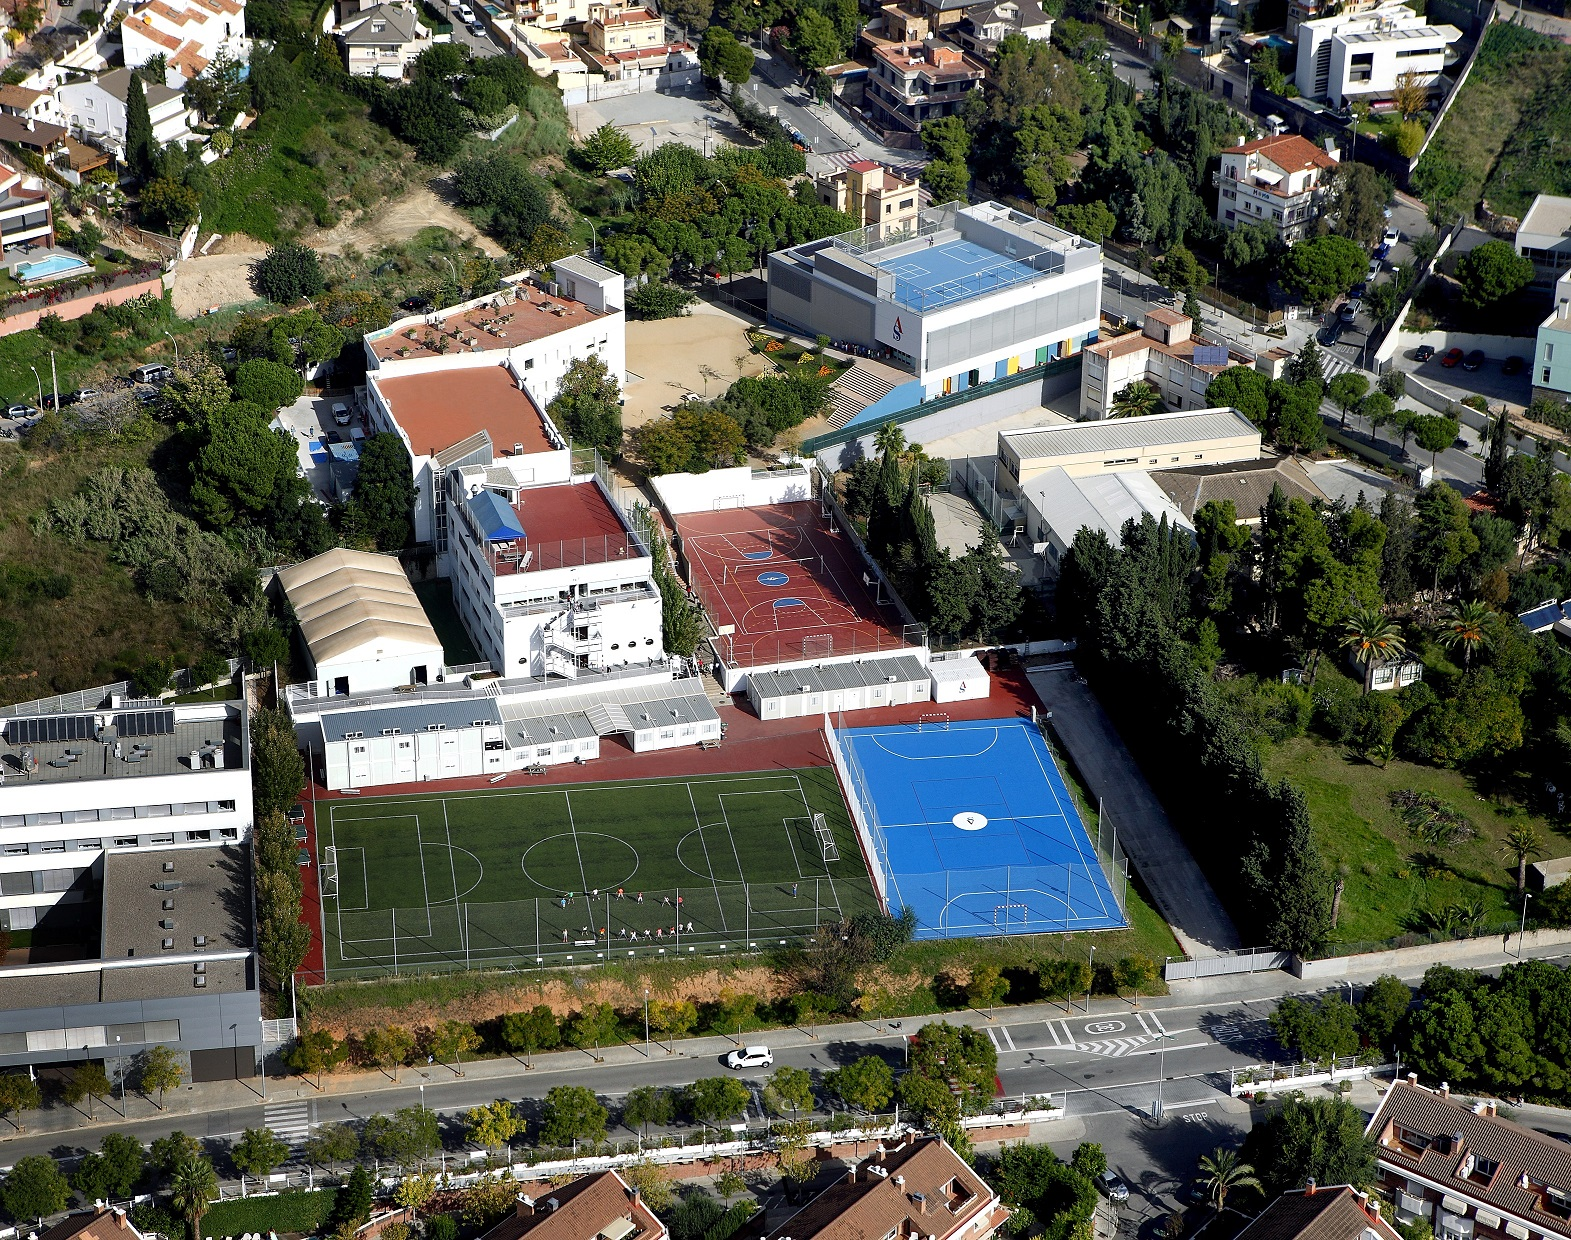 The American School of Barcelona